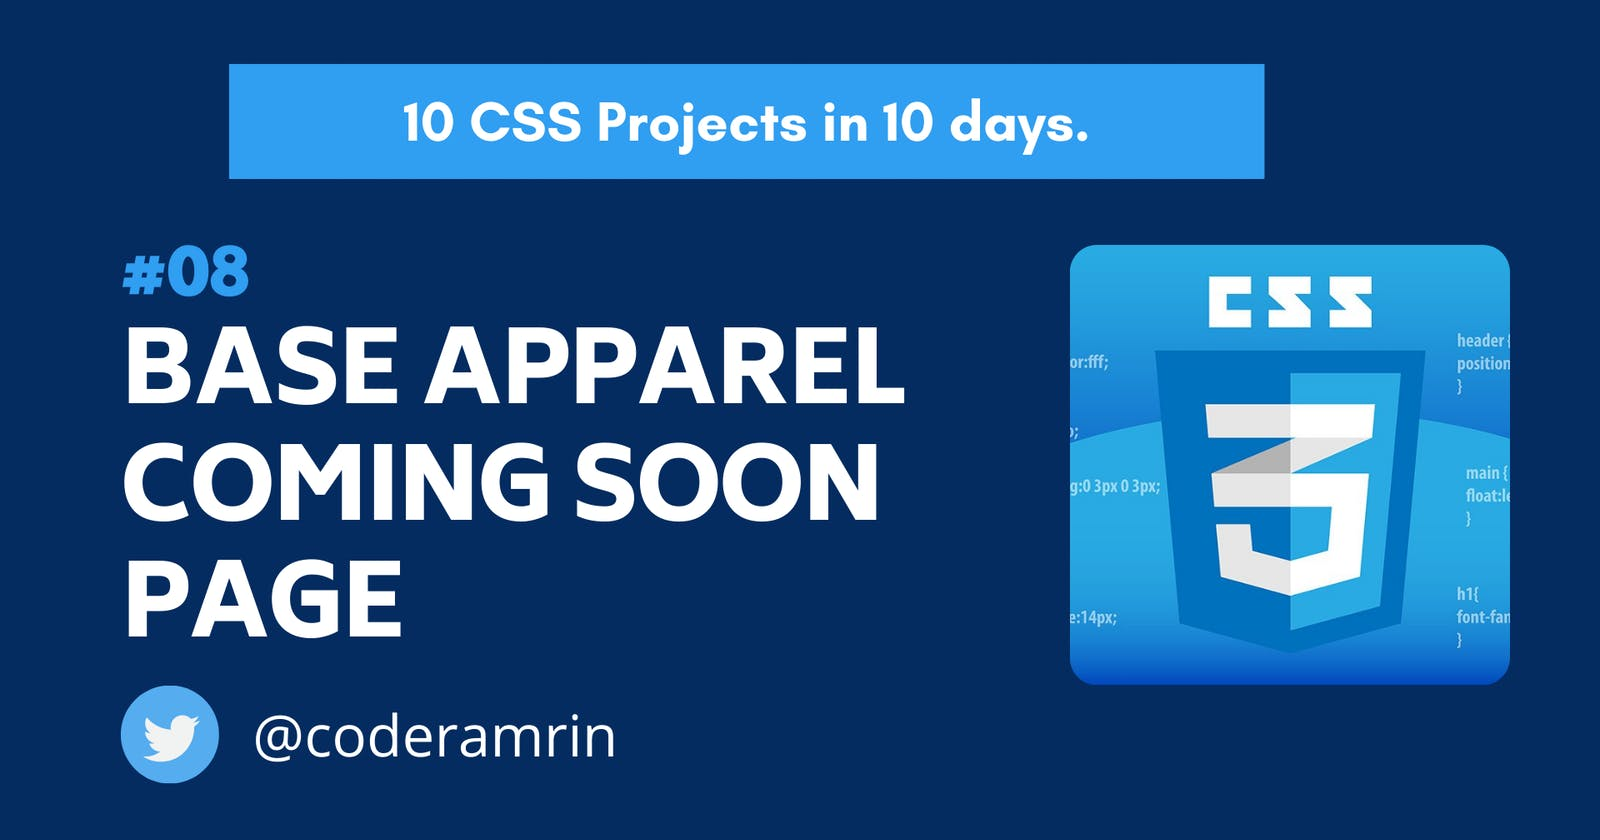 Build 10 CSS Projects in 10 days: Project 8